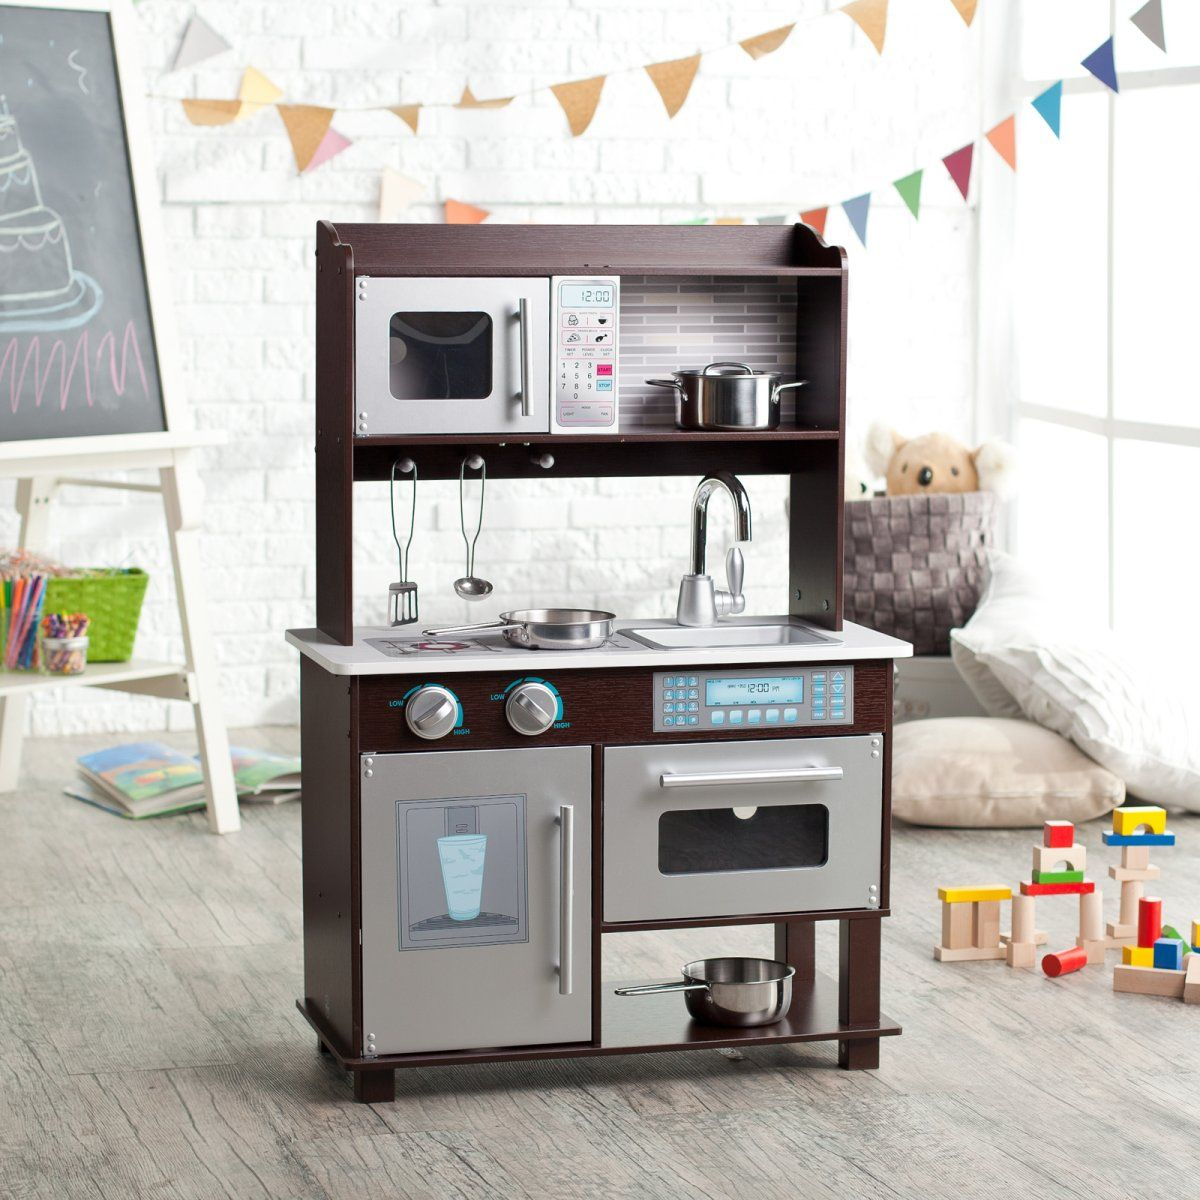 Childrens Wooden Kitchen Furniture Kids Wooden Kitchen Set Wandaericksoncom